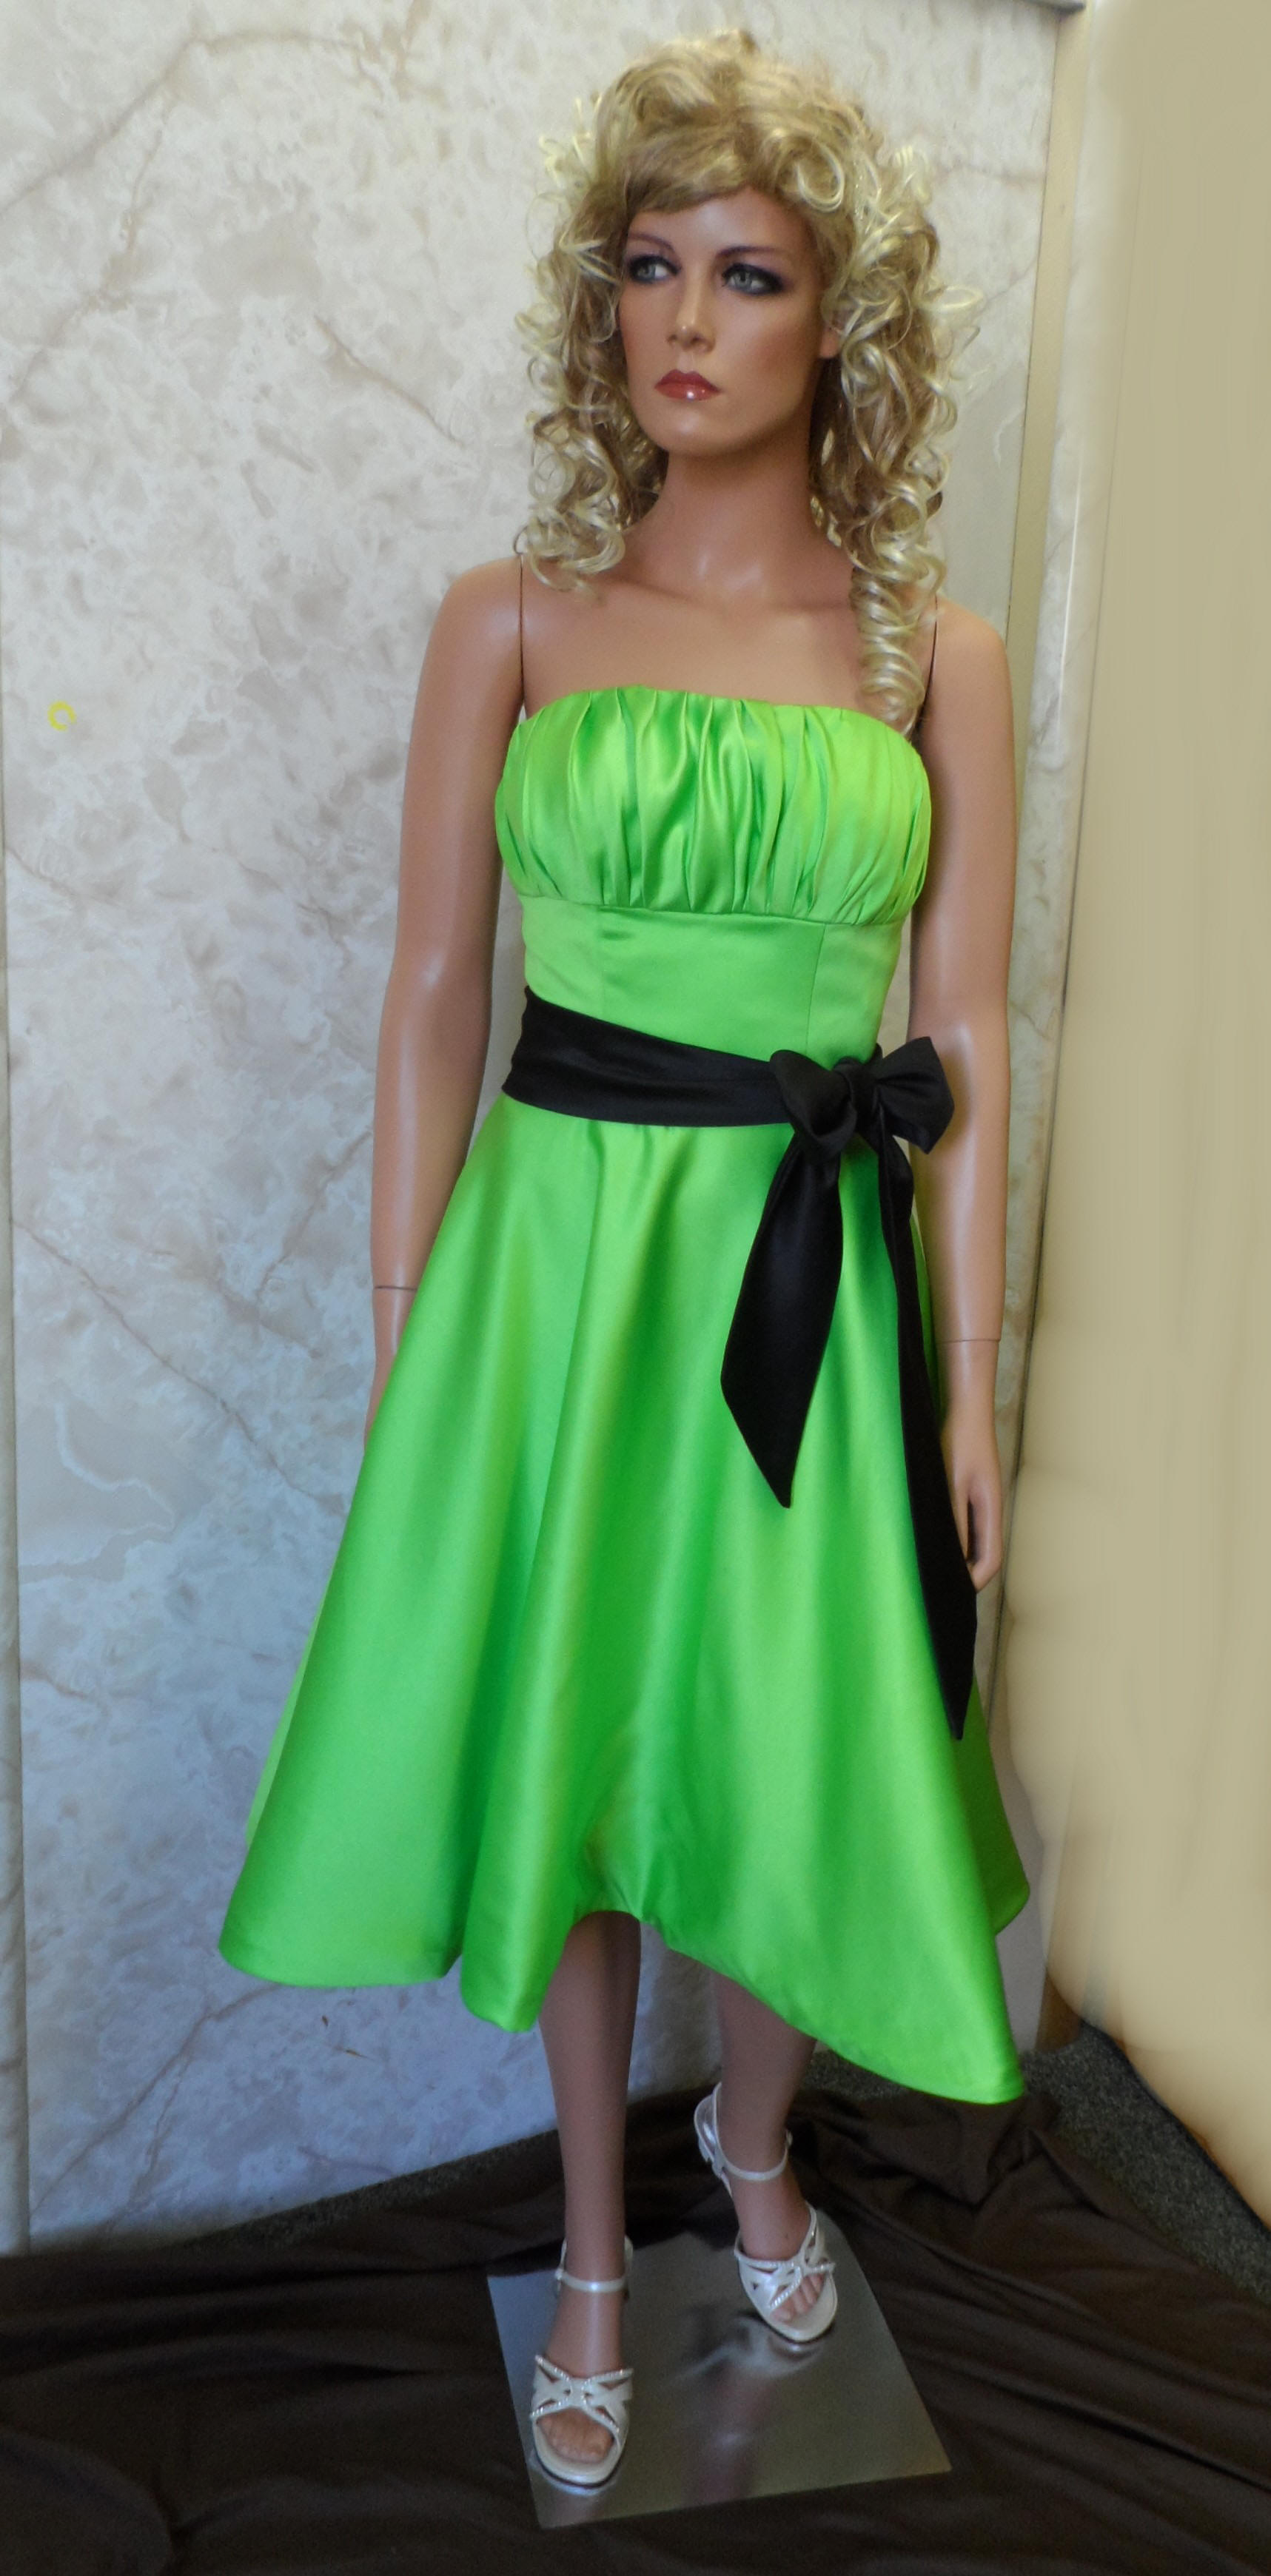 Short Green Bridesmaid Dress With Black Sash